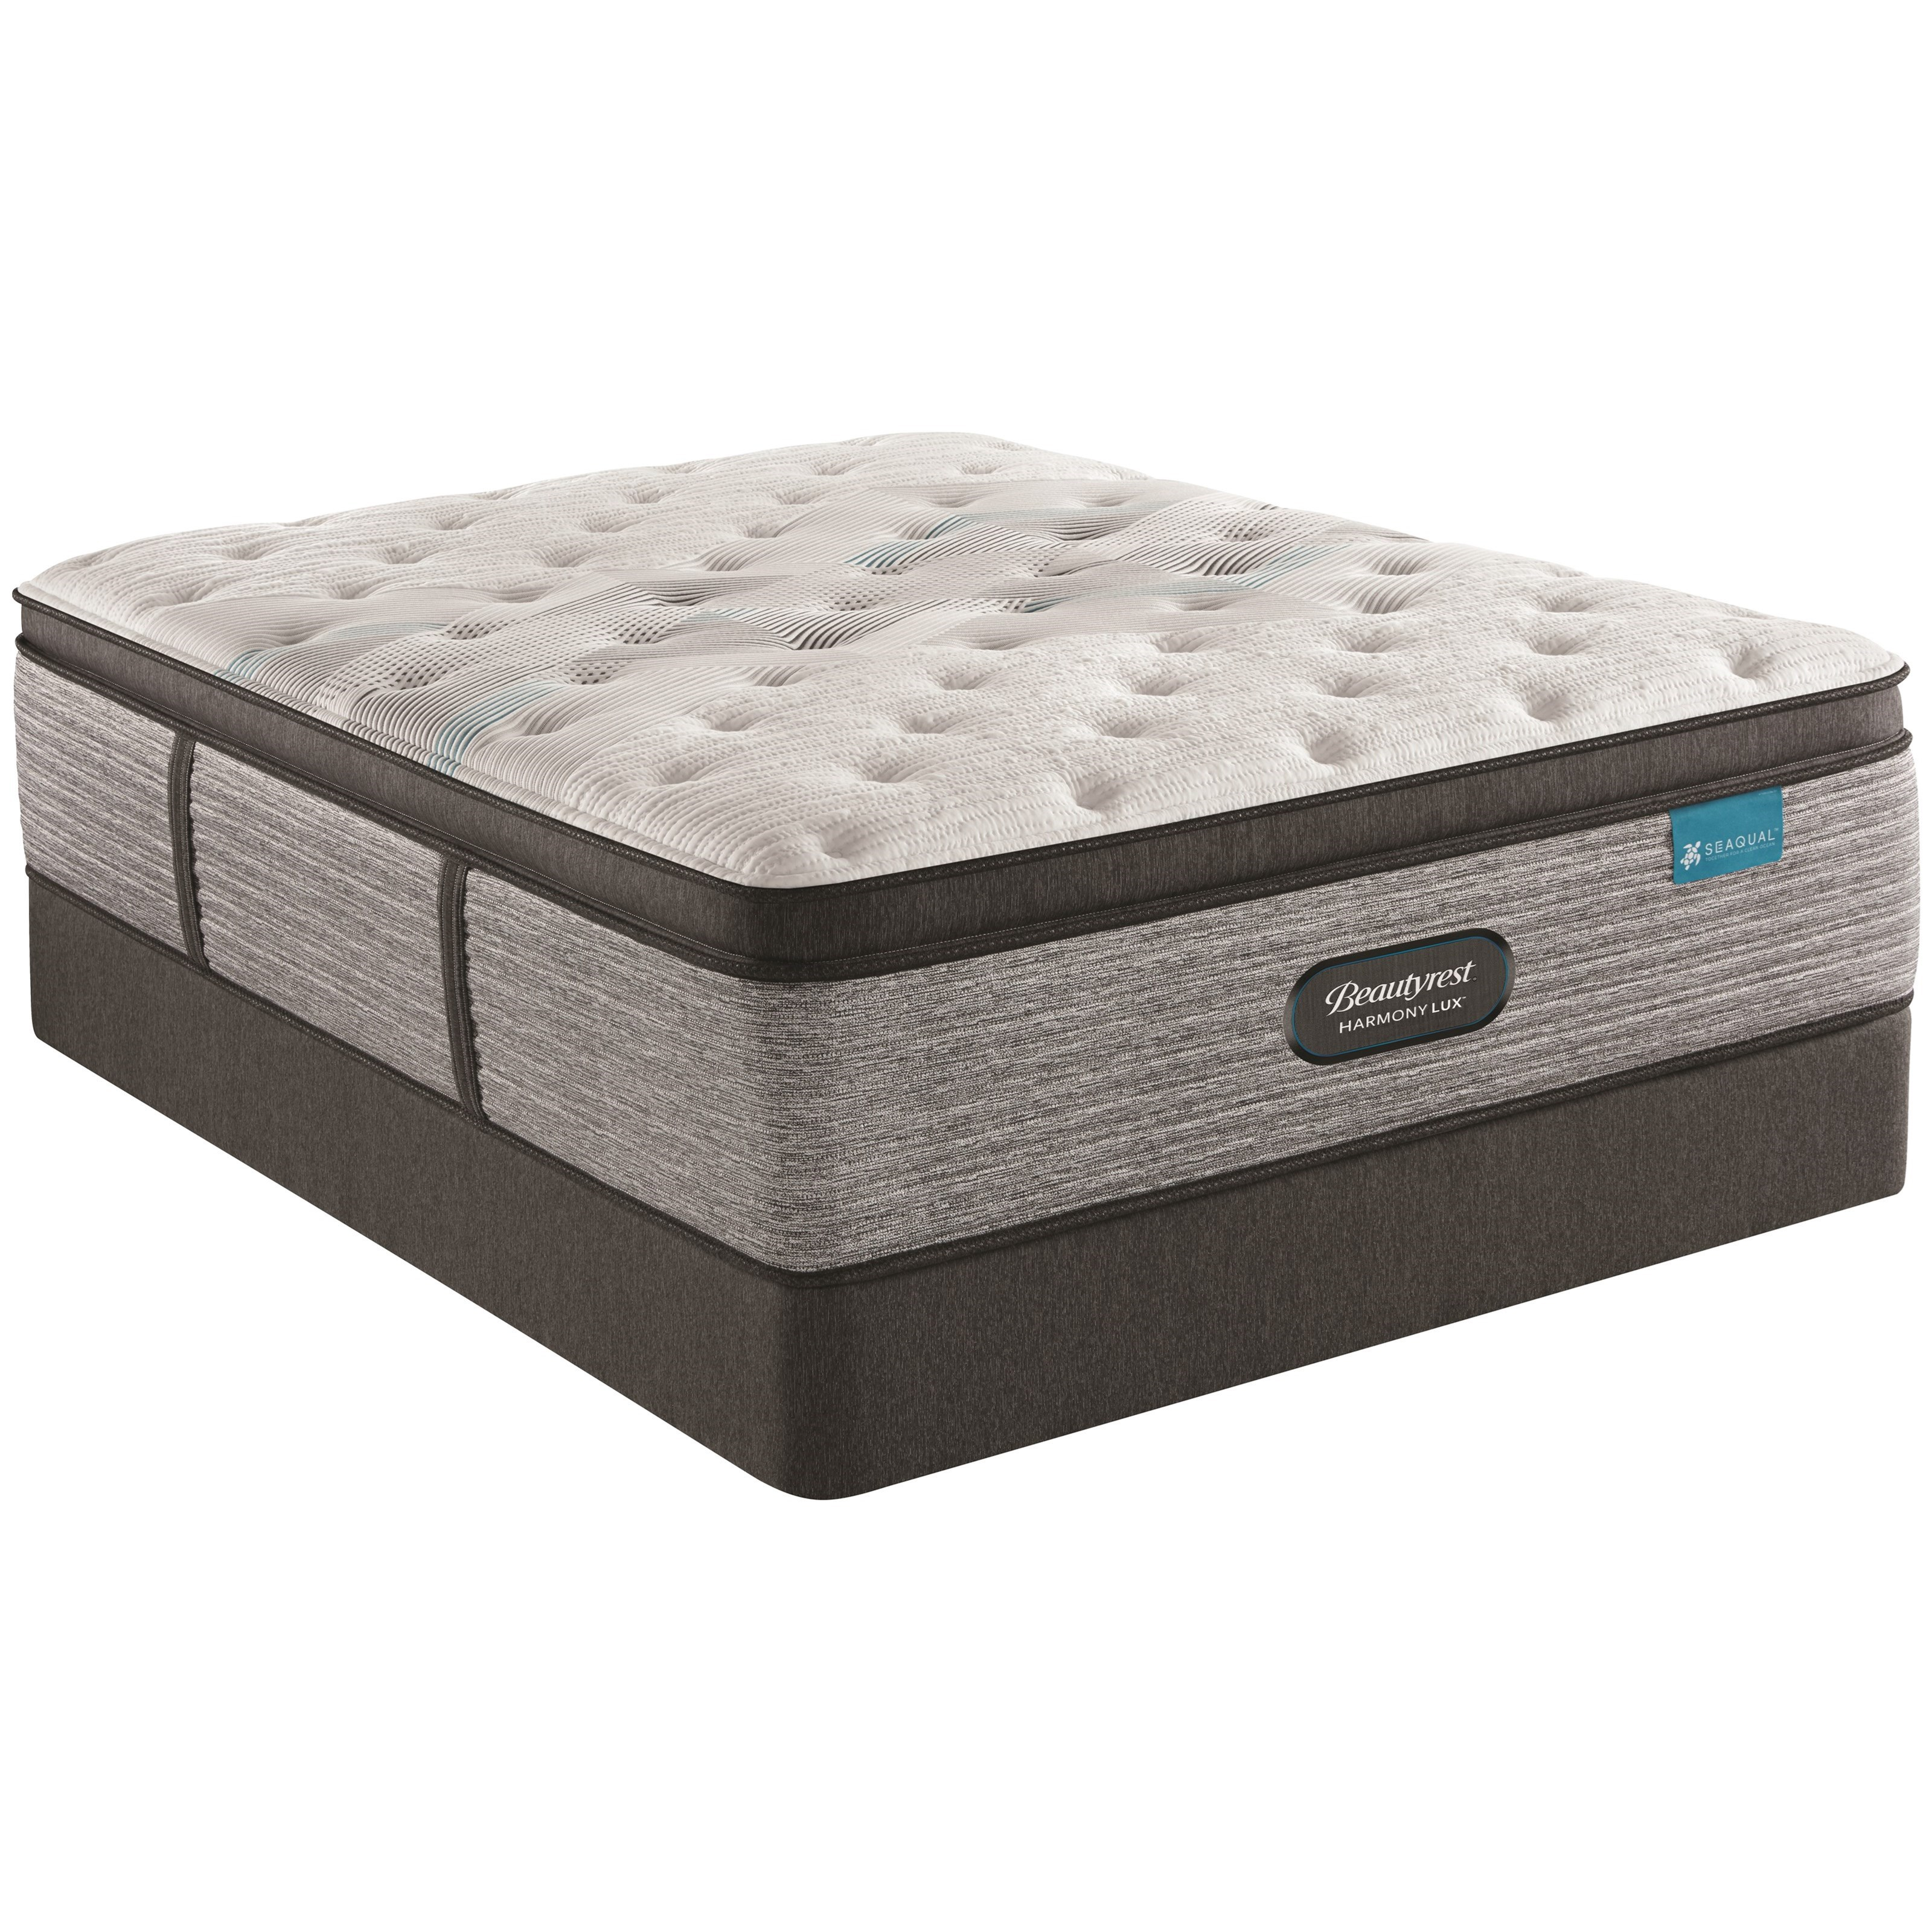 "Queen 15 3/4"" Medium PT Mattress Set"